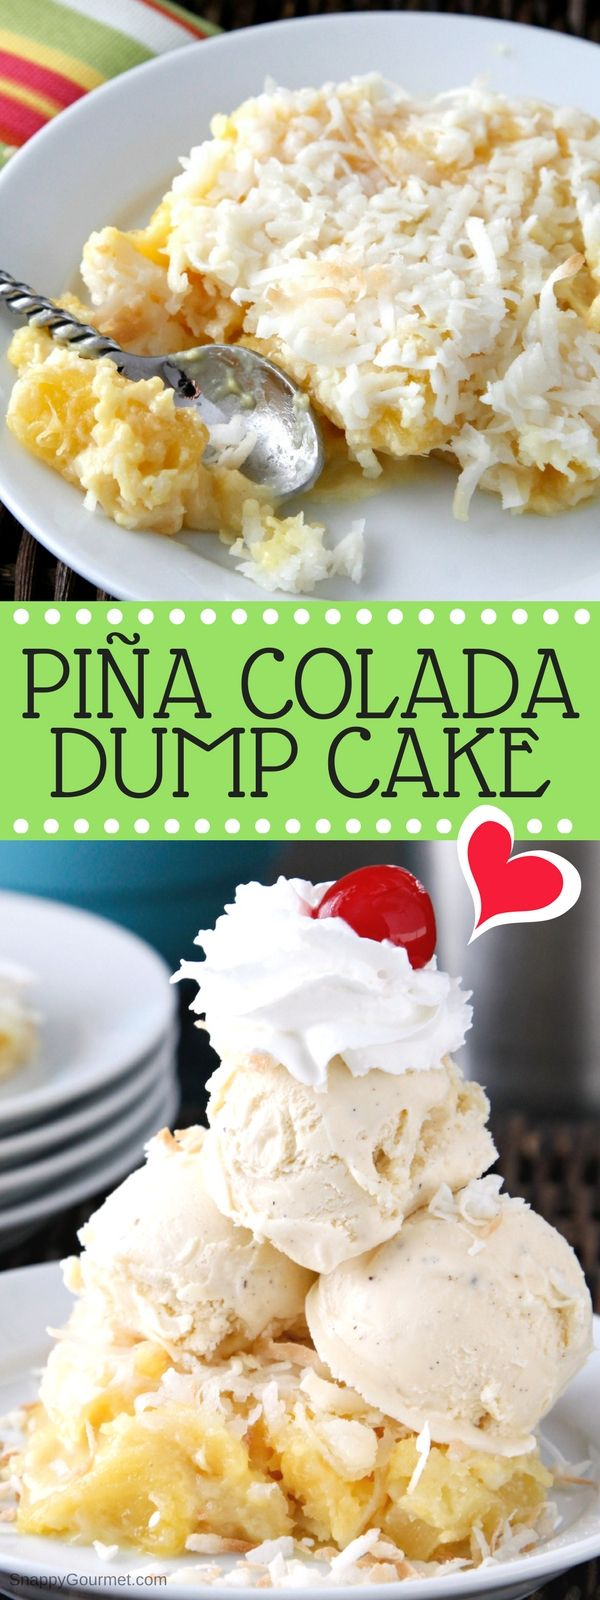 PIÑA COLADA DUMP CAKE - an easy pineapple coconut cake with cake mix, pineapple, coconut, and rum! SnappyGourmet.com #Cake #Dessert #pinacolada #Pineapple #coconut #rum #SnappyGourmet